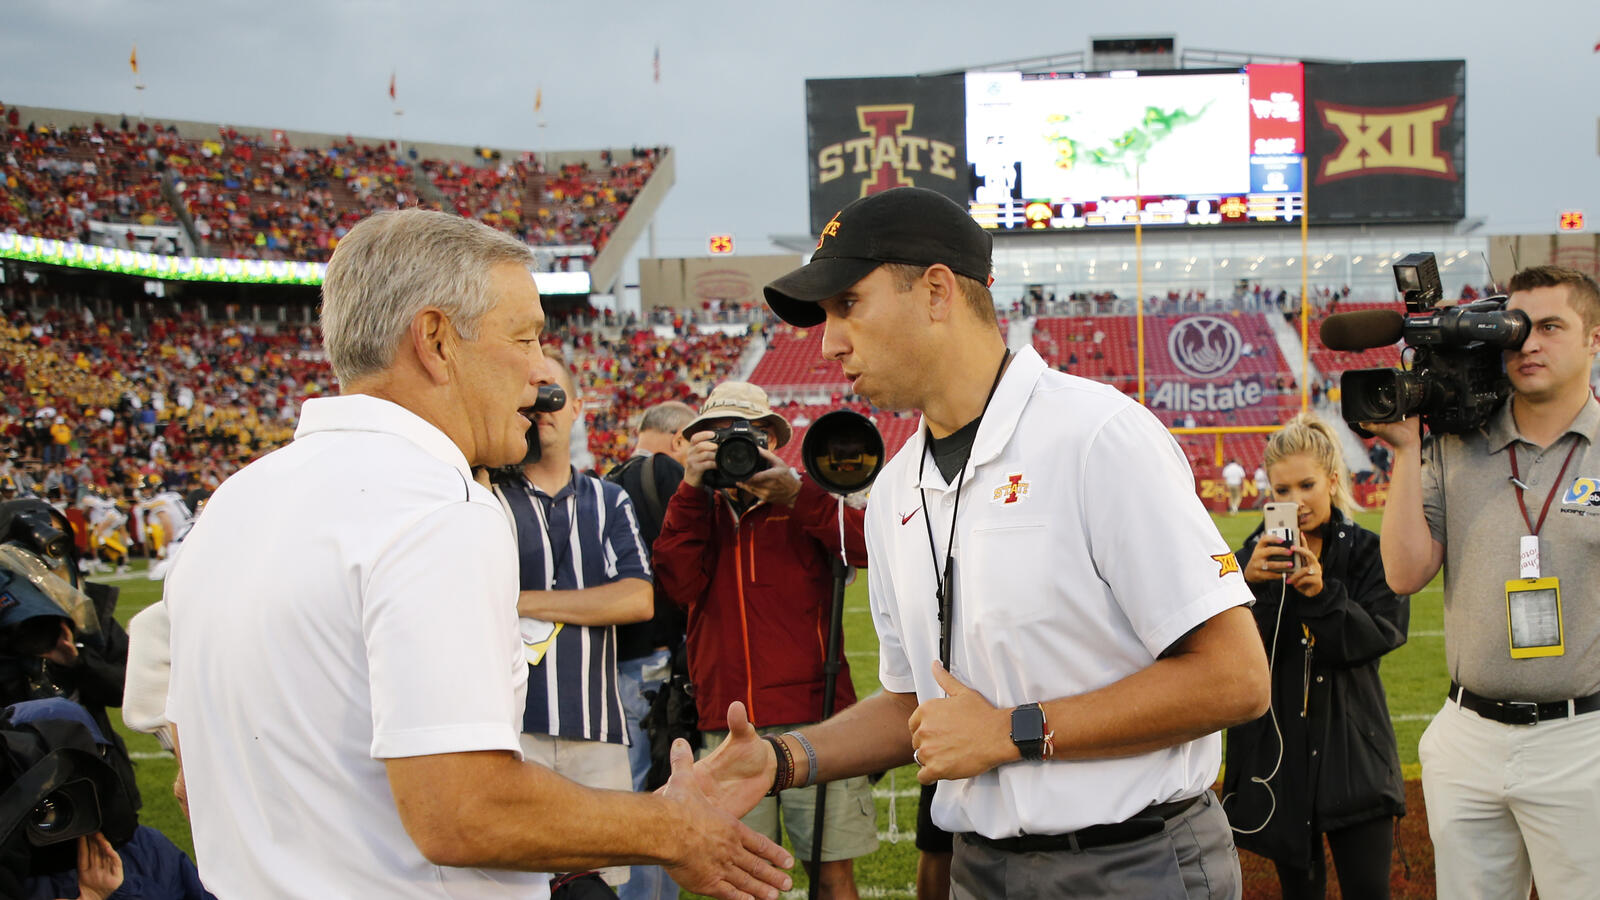 CELL ADVANTAGE POLL: Is This The Biggest Game Ever In The Cy-Hawk Series?